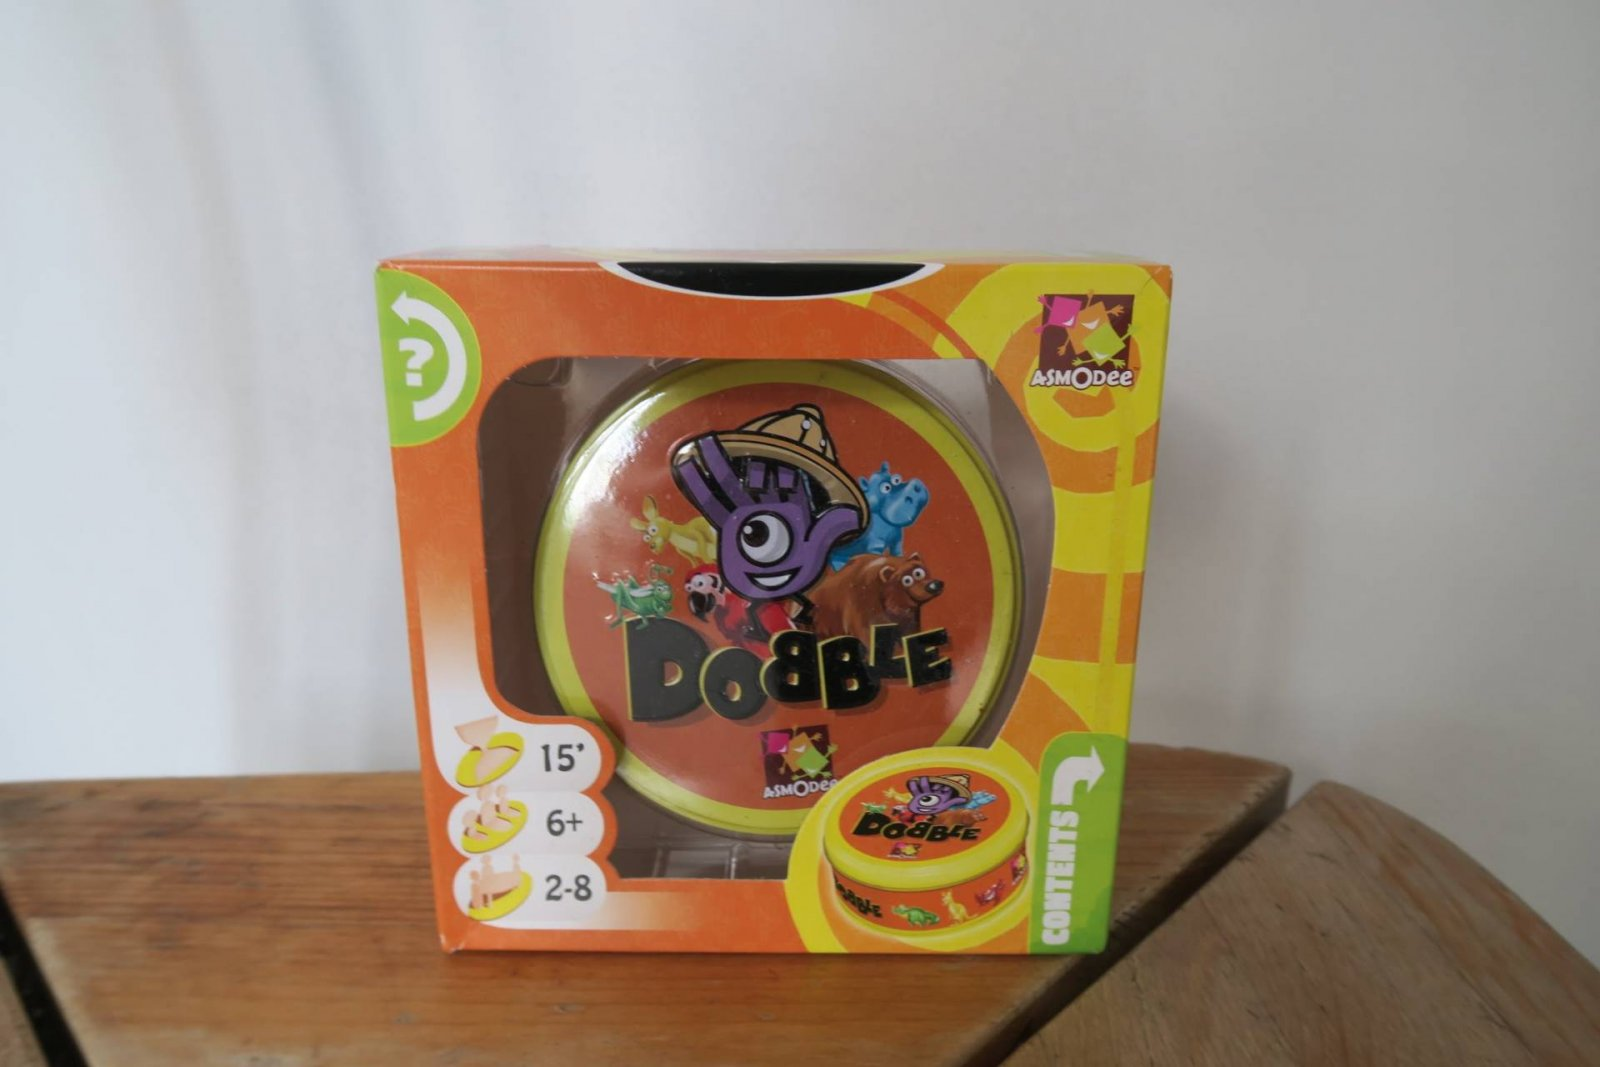 Have you tried Dobble yet? Easy Fun Kids Game + New Animals Version